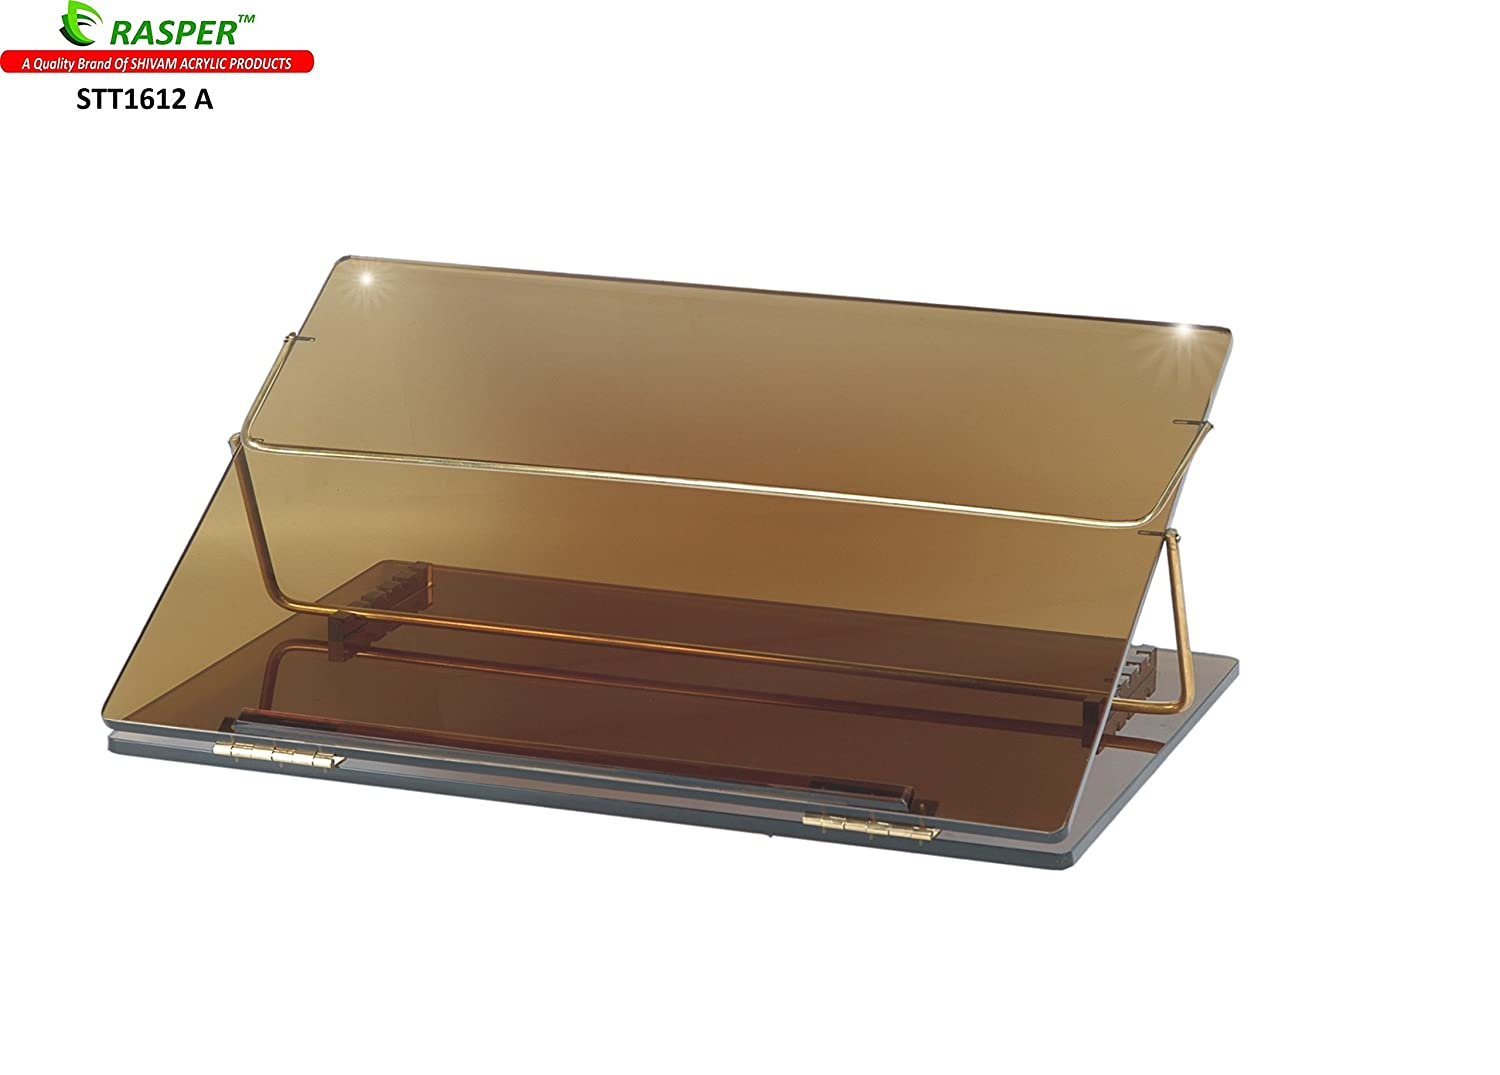 table top. rasper acrylic table top elevator writing desk (small size 16*12 inches) with adjustable height: amazon.in: office products